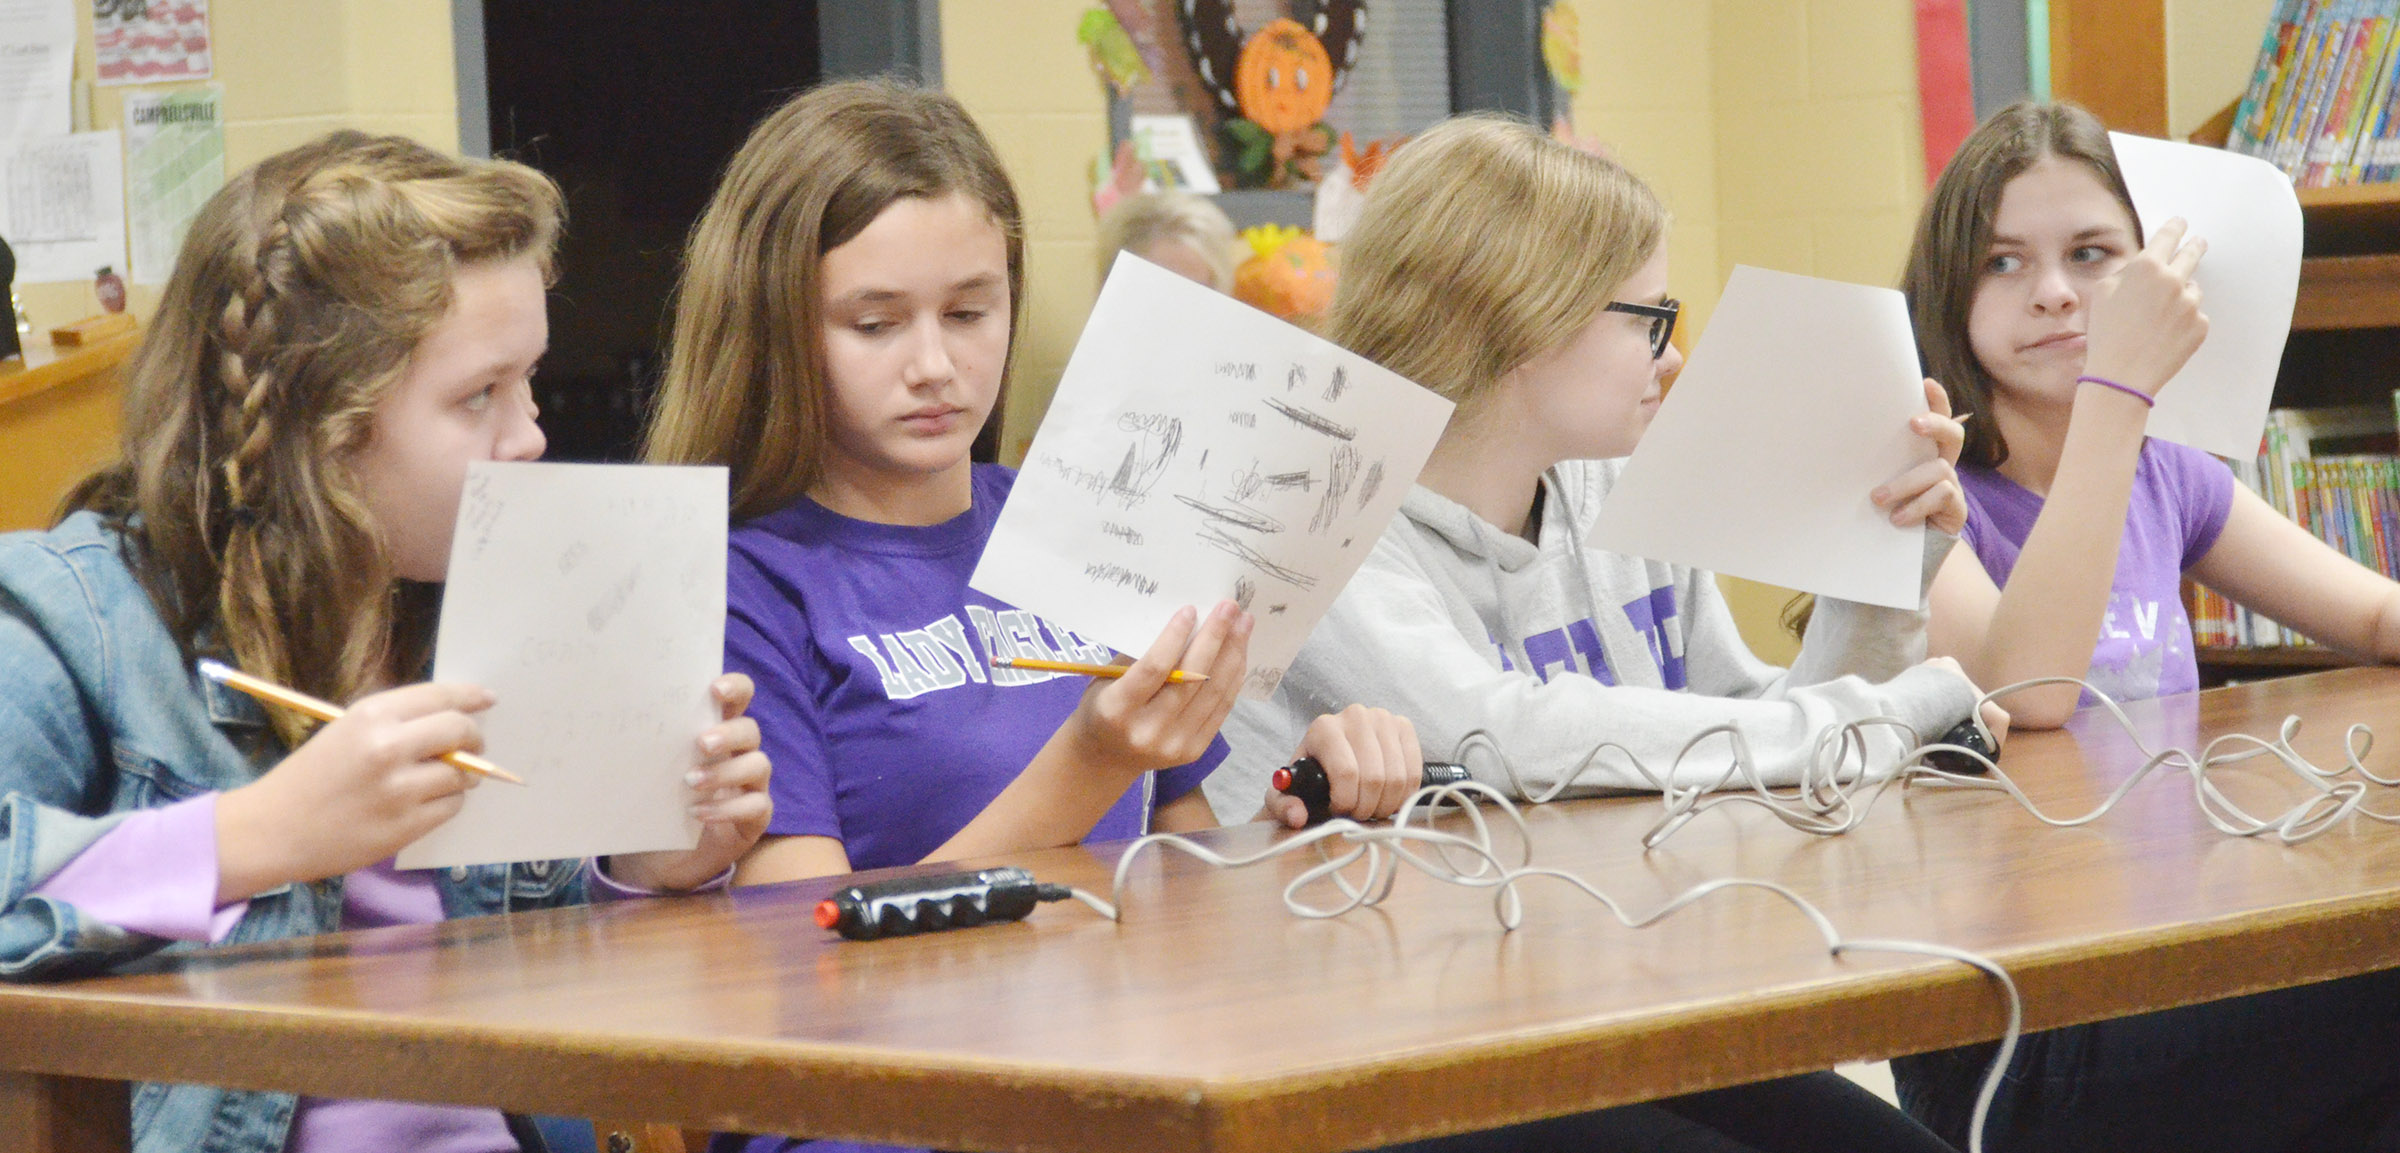 From left, CMS seventh-graders MaCayla Falls, Haylee Allen, Whitney Frashure and Karlee Rakel discuss a question.